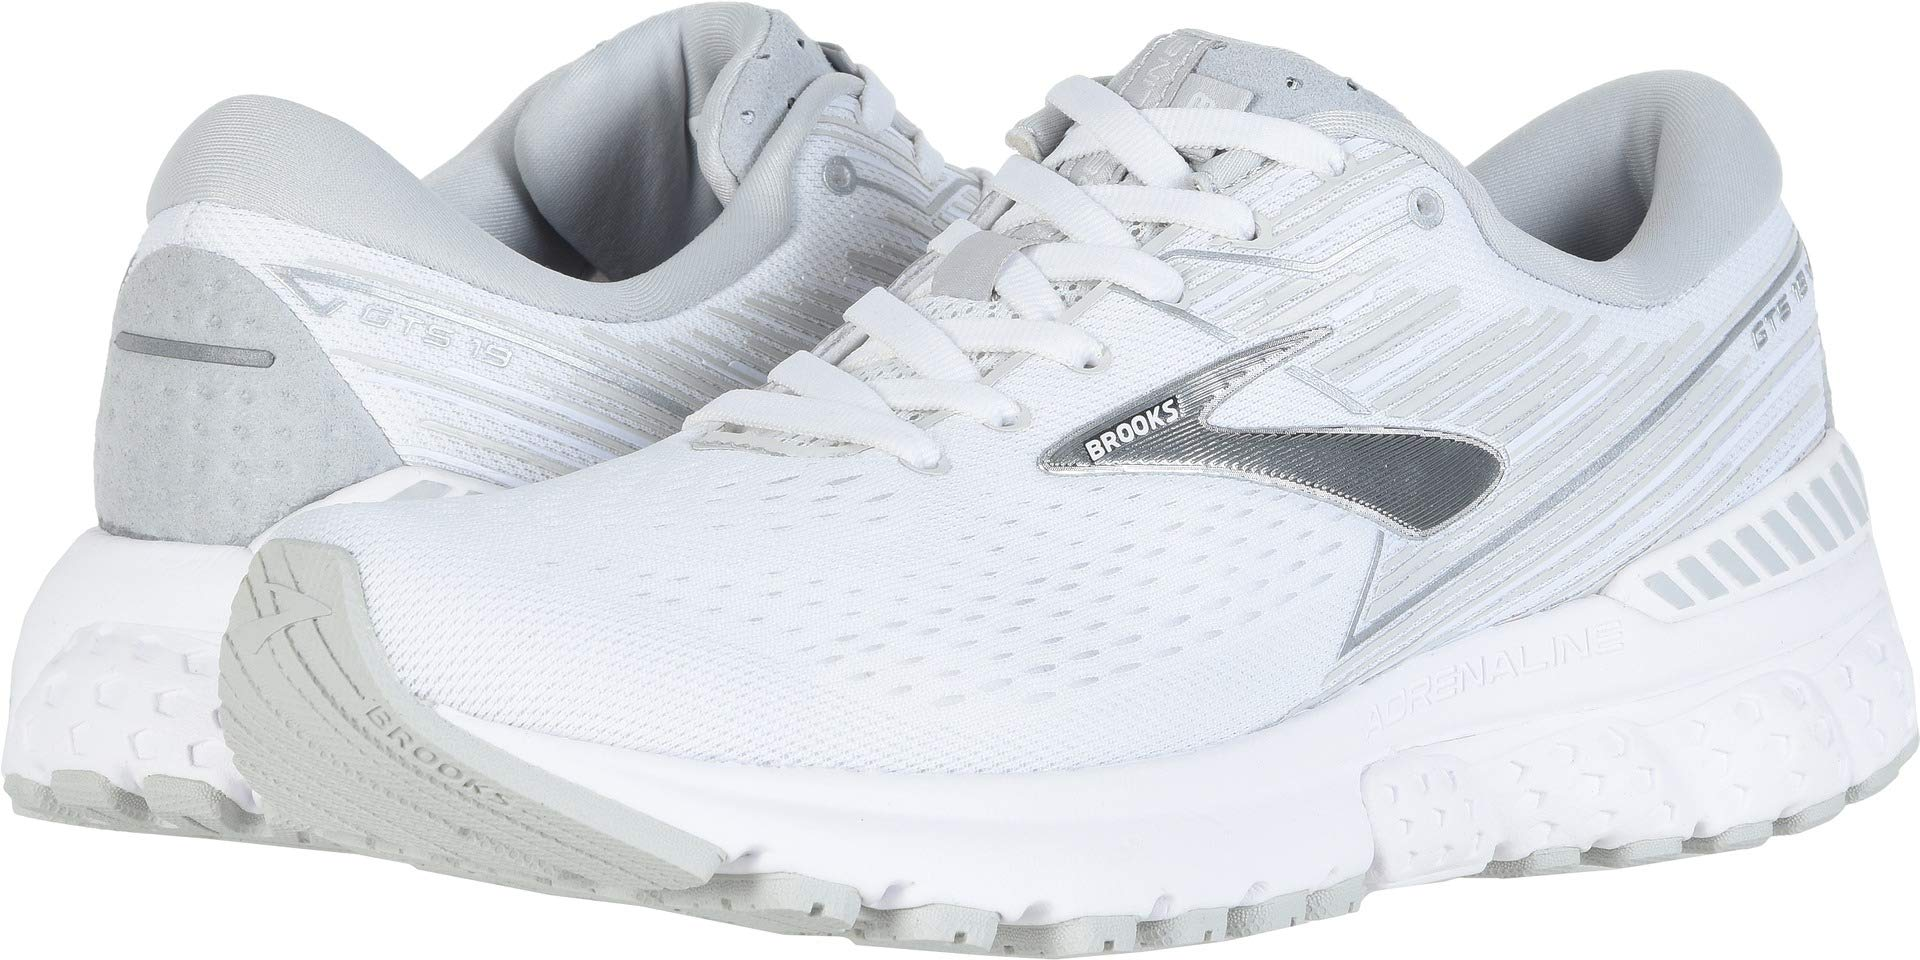 Brooks Women's Adrenaline GTS 19 White/White/Grey 11.5 Wide US by Brooks